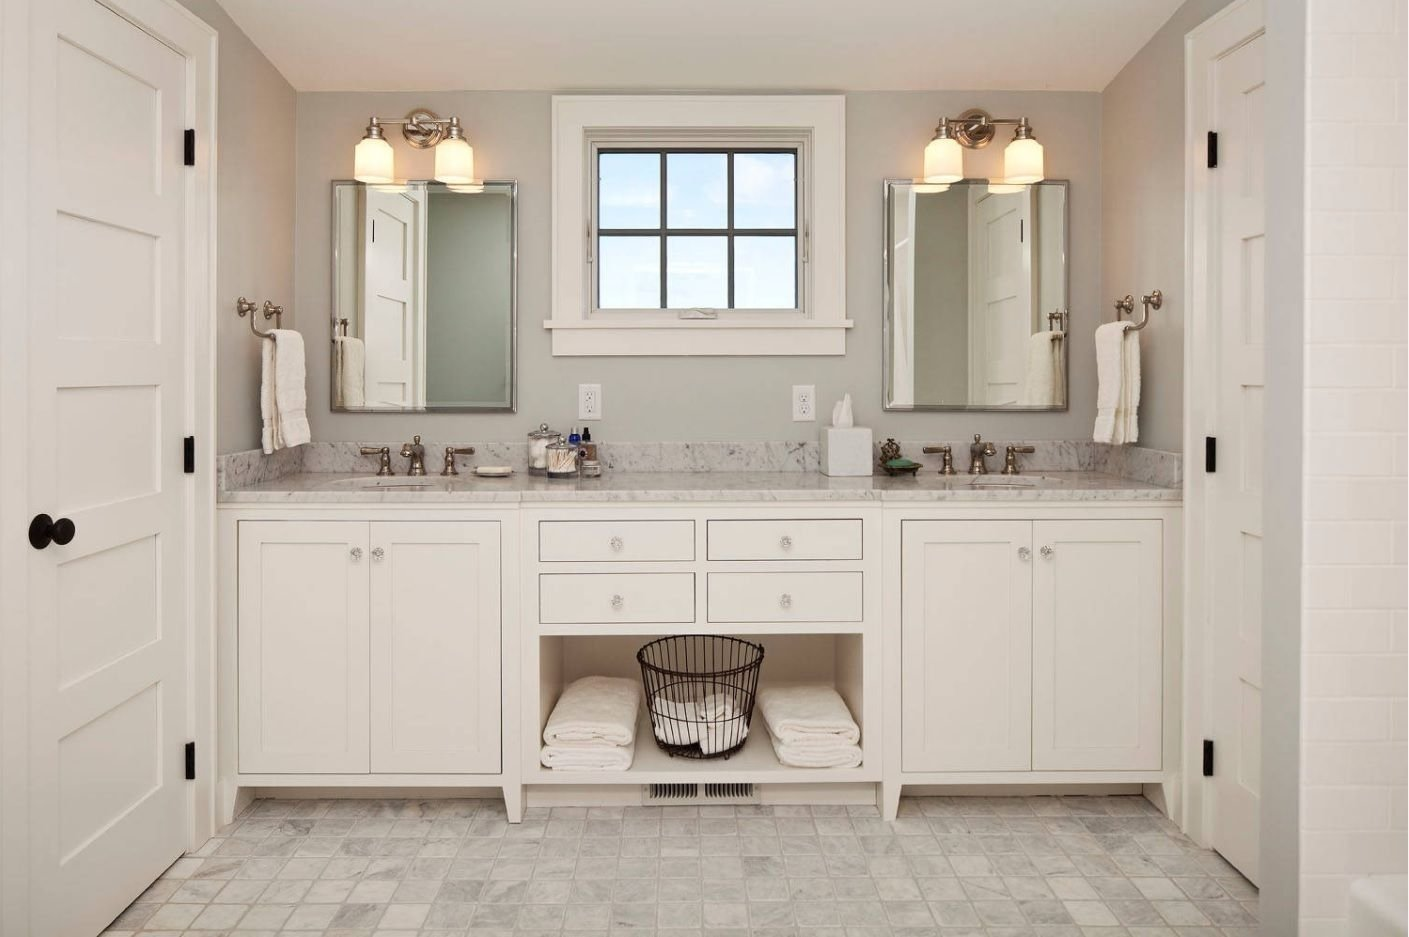 10 Most Recommended Jack And Jill Bathroom Ideas jack and jill bathroom interior design ideas small design ideas